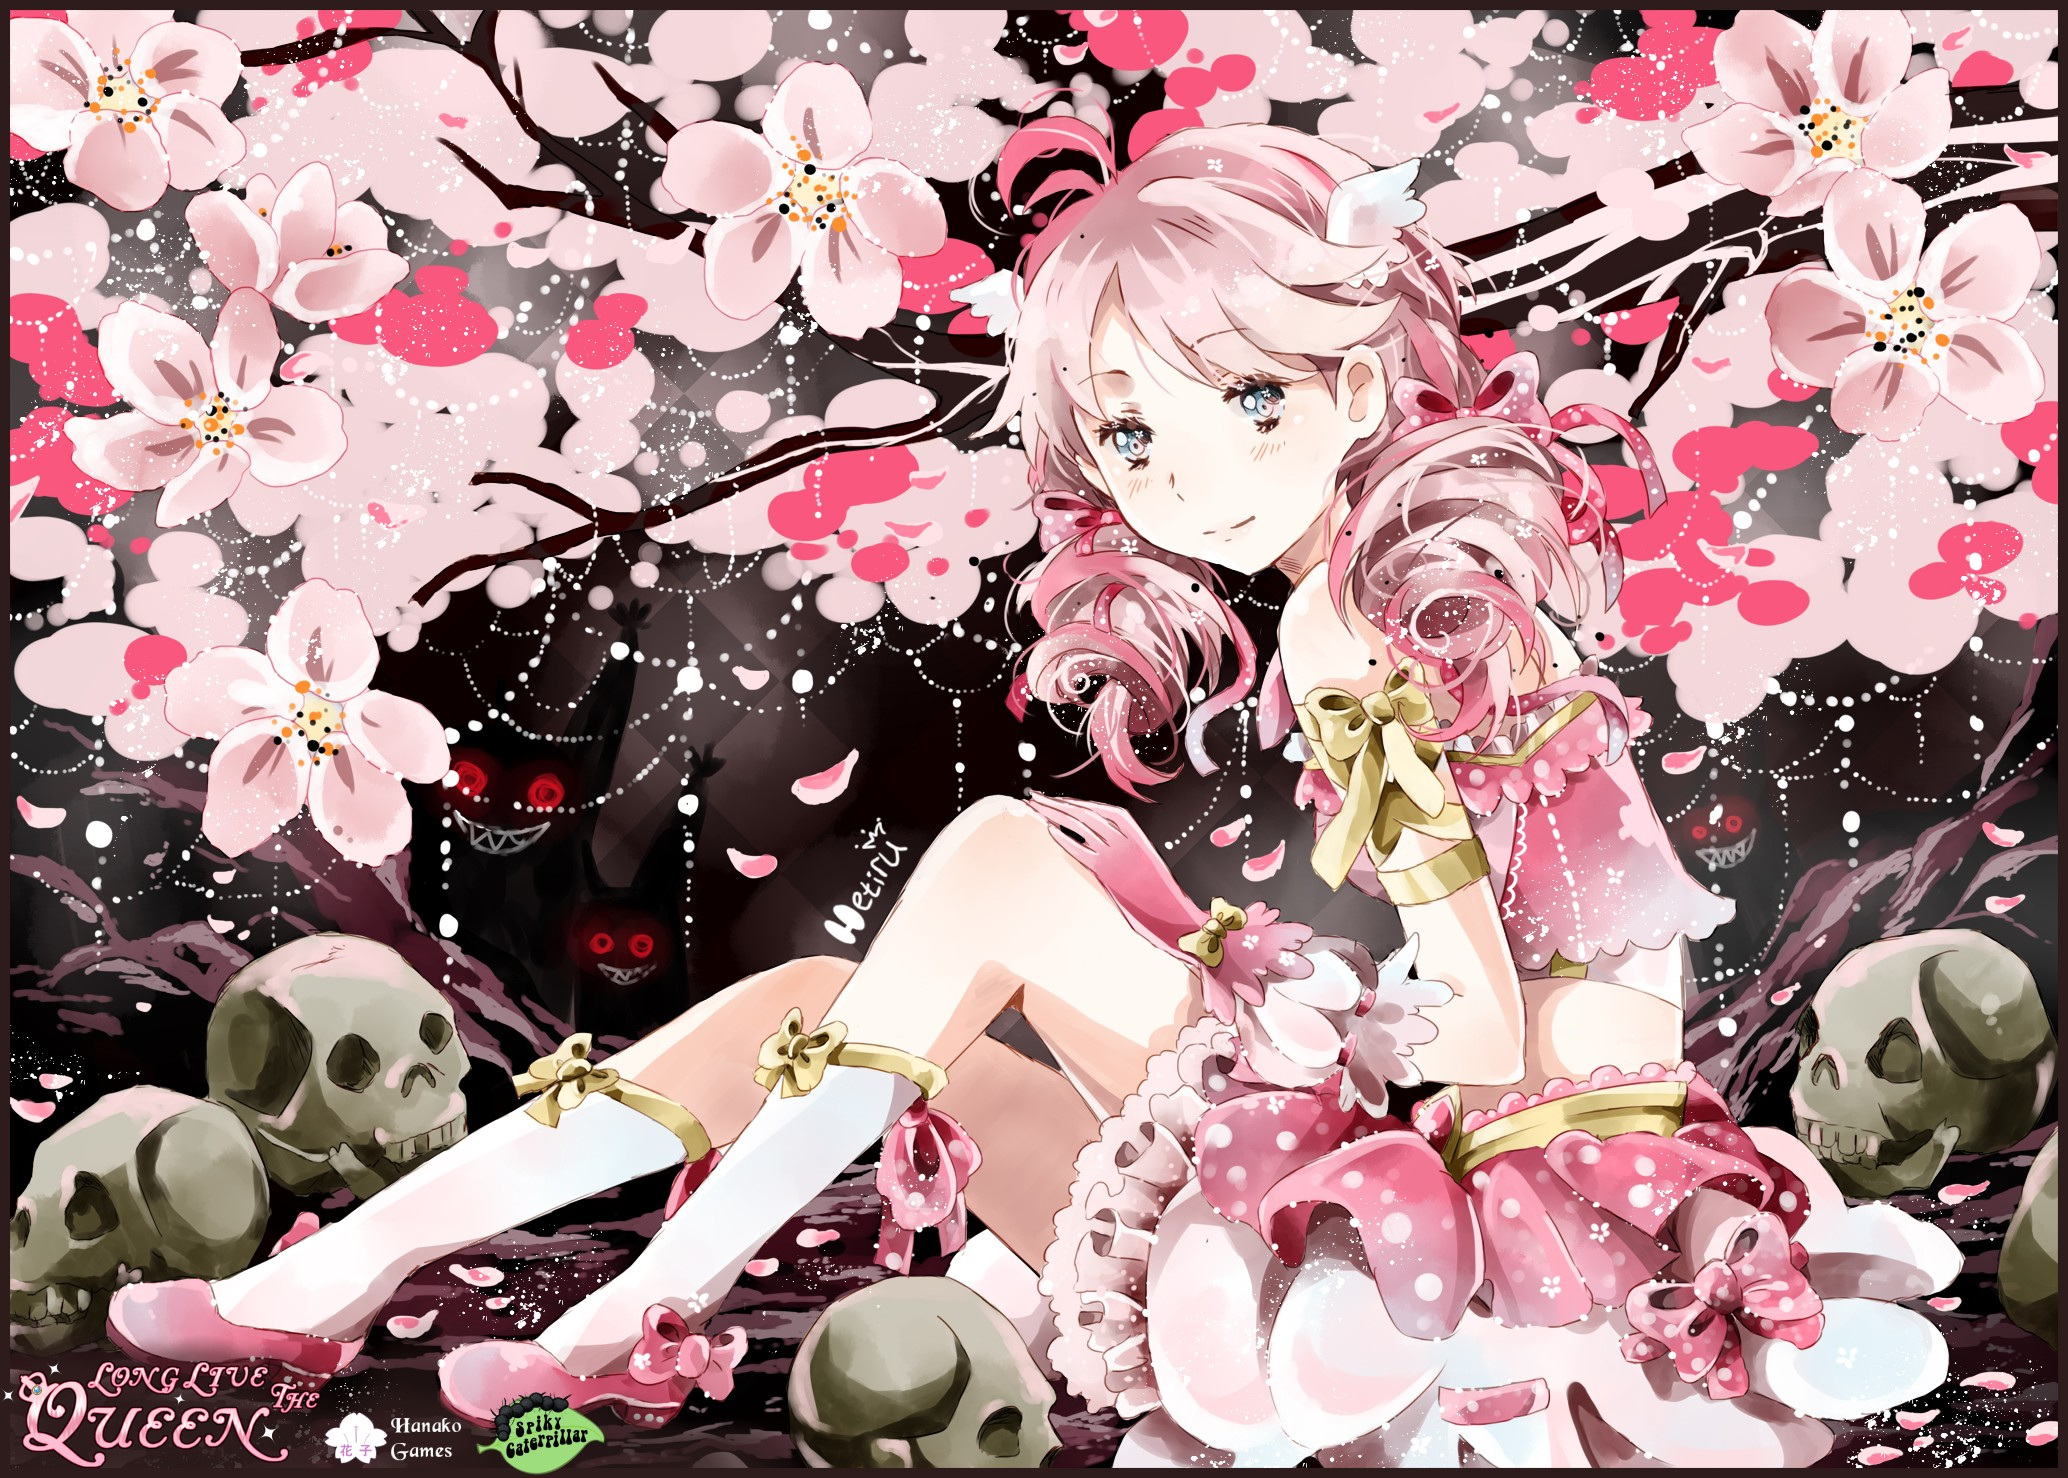 Political Anime Girl Wallpaper Rule The World Or Die Trying Long Live The Queen Sim Game